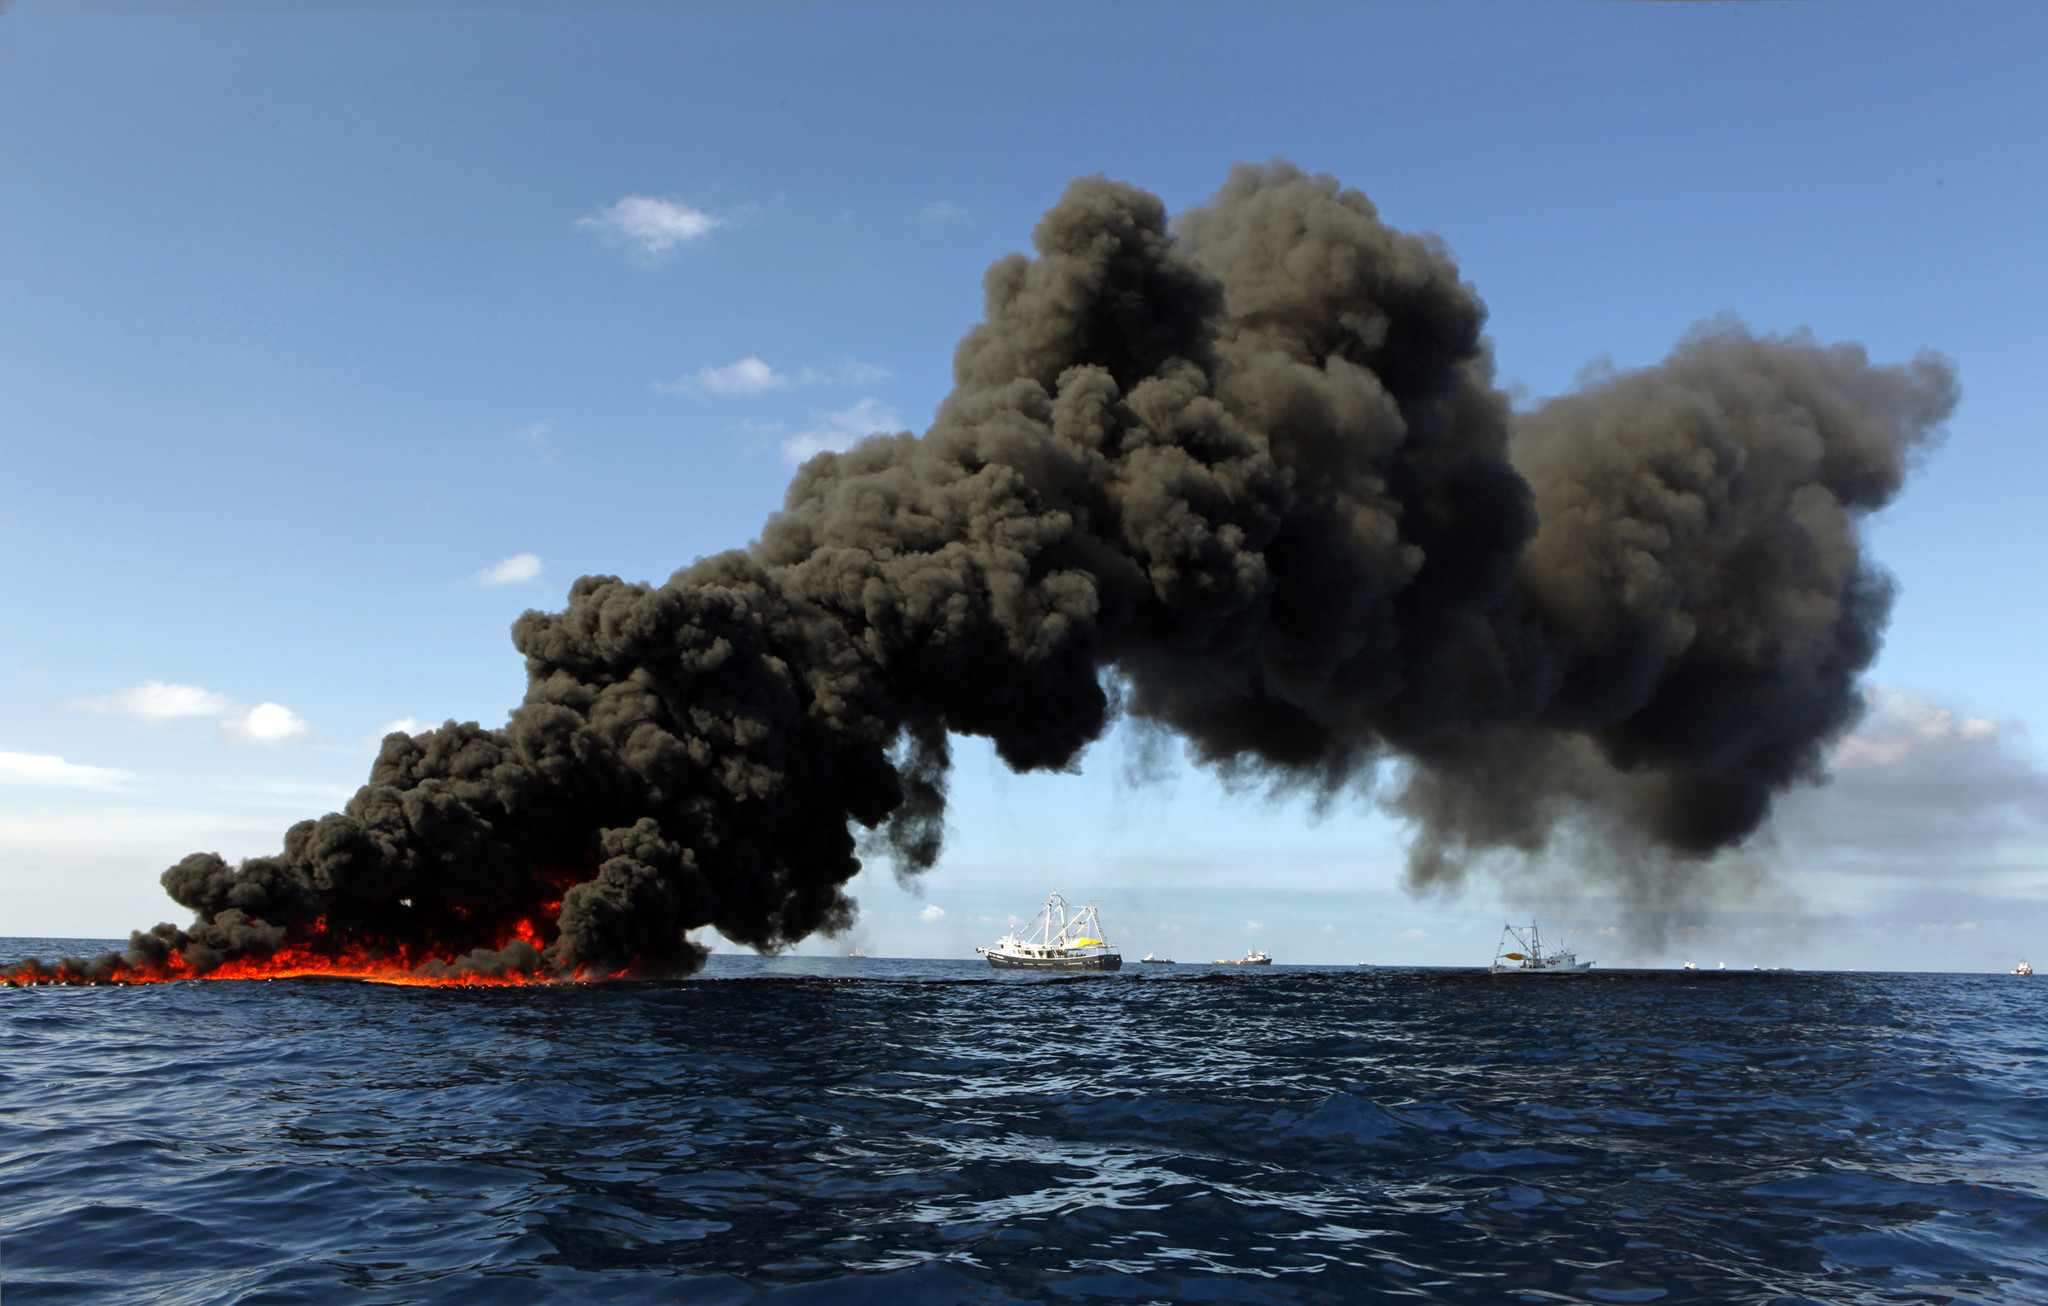 gulf of mexico oil spill When the gulf of mexico oil spill began in 2010, the fda, the national oceanic and atmospheric administration's (noaa) national marine fisheries service.